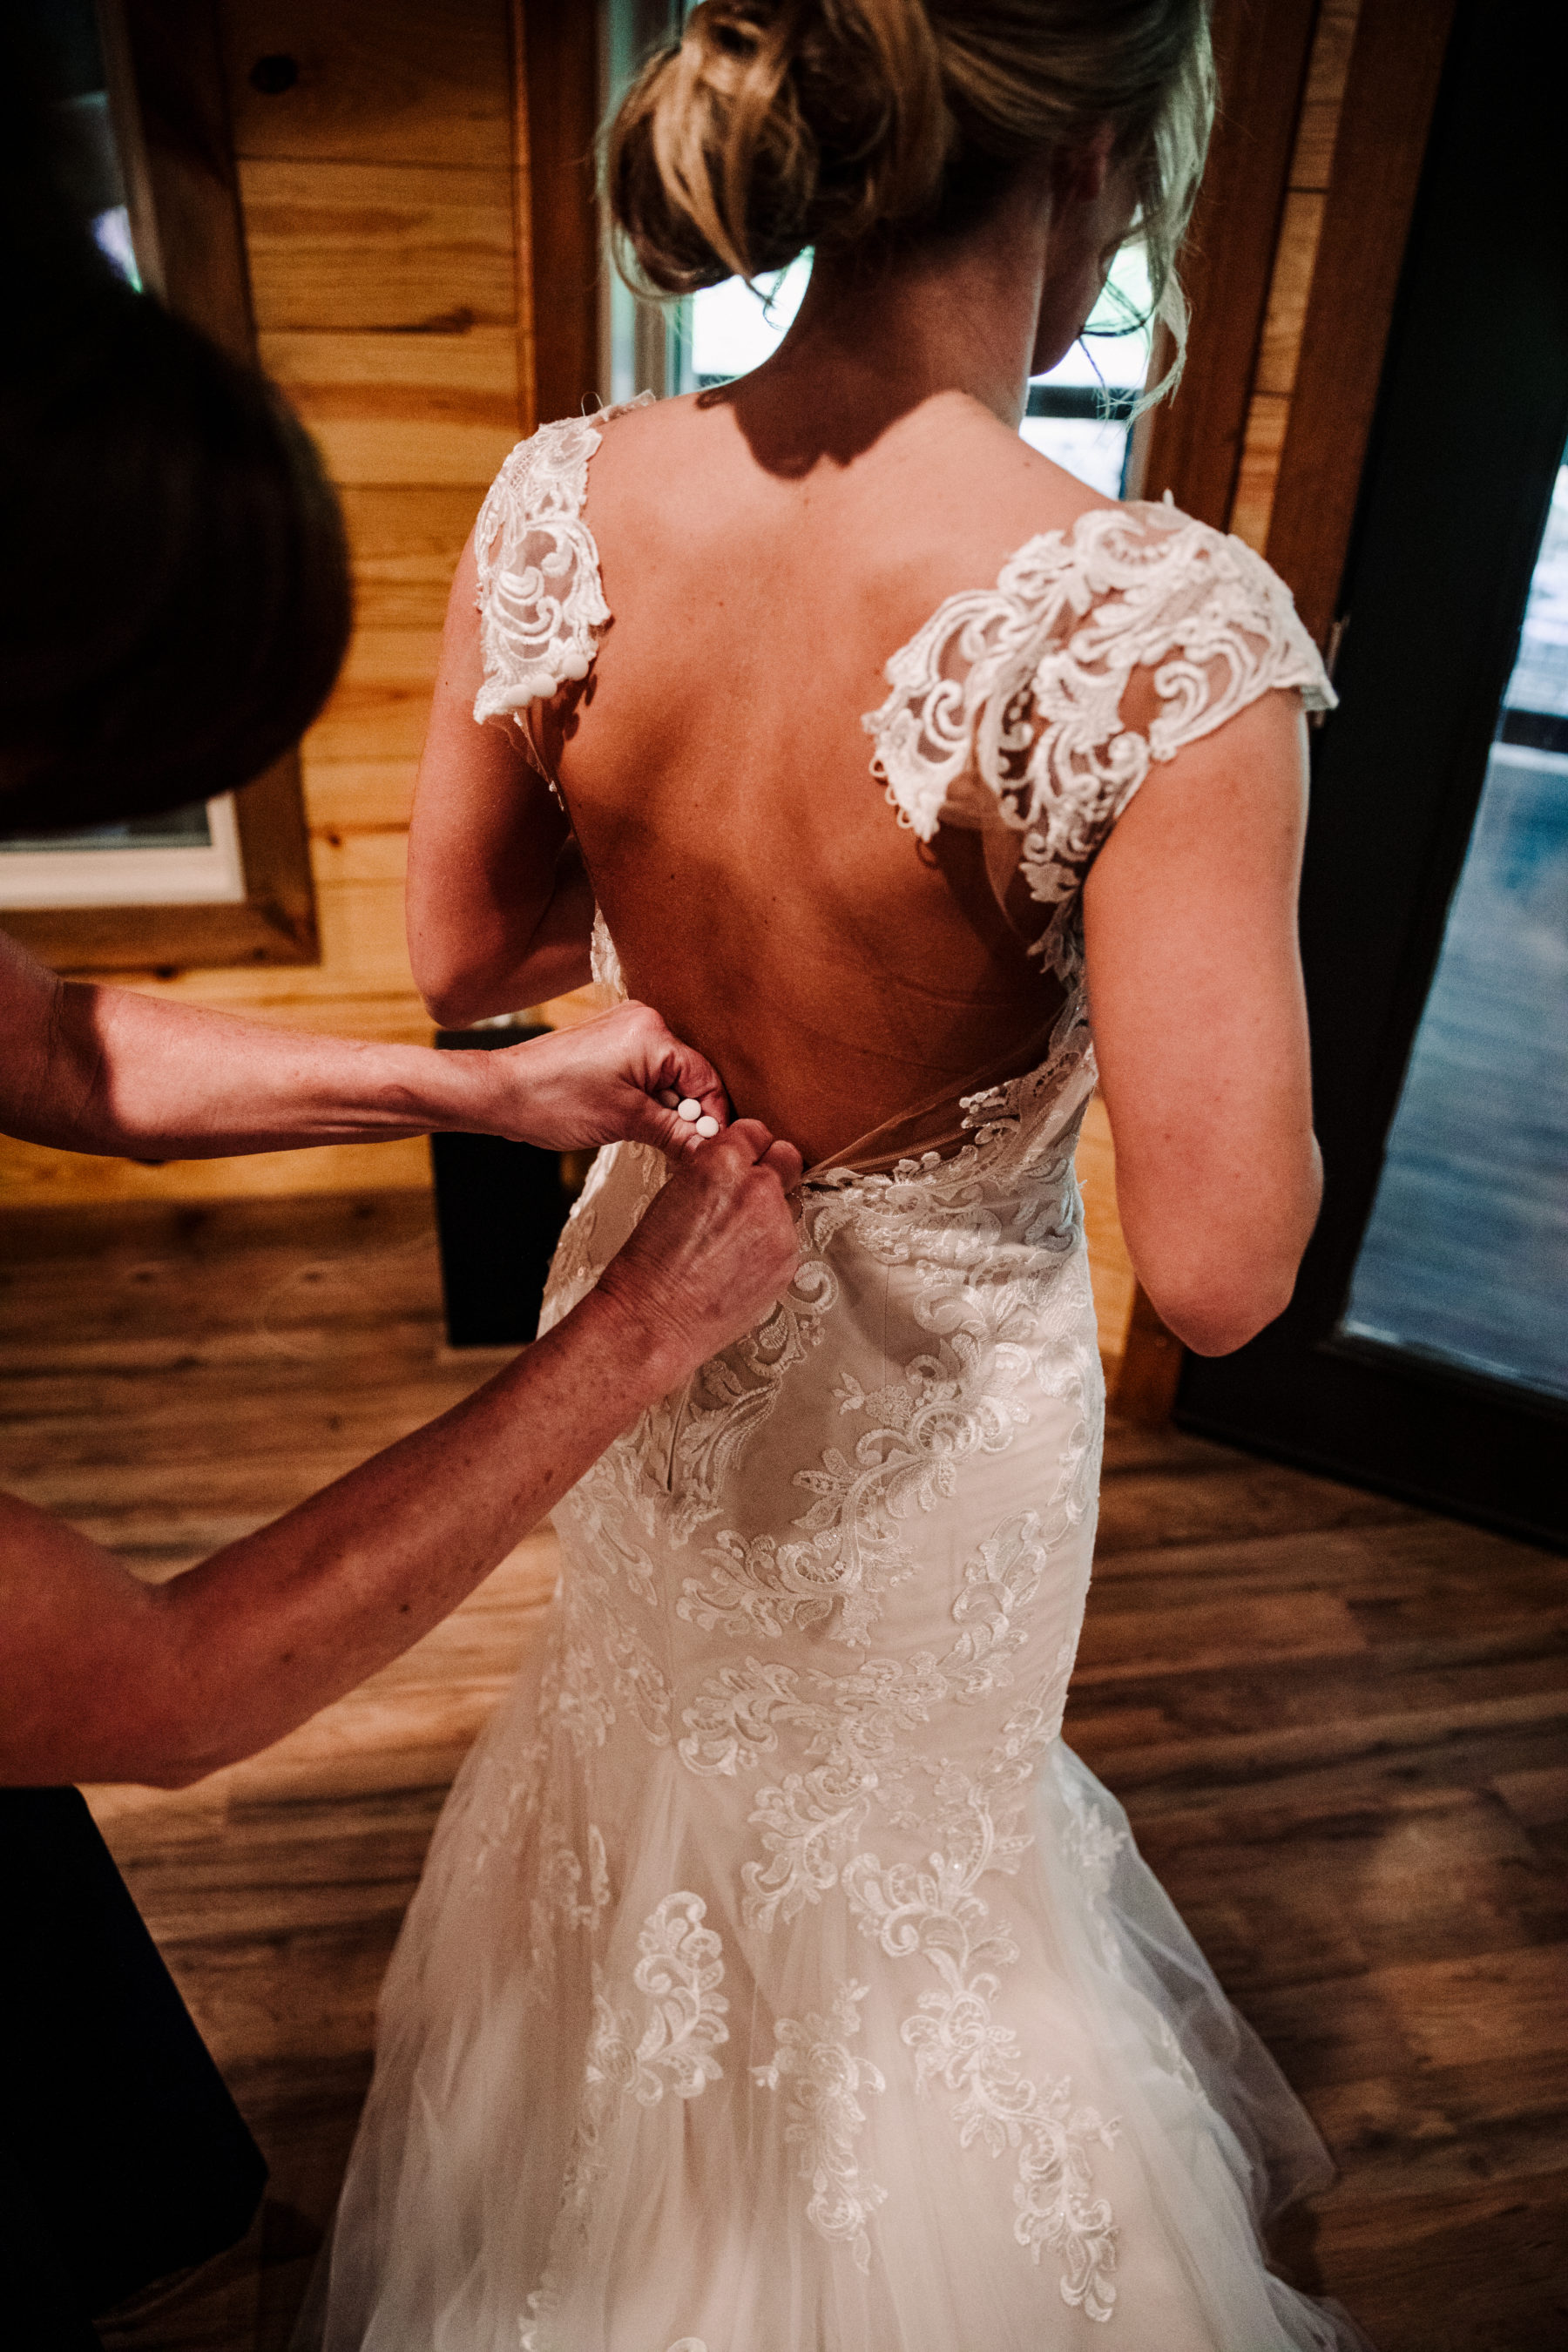 Wedding Dress Details: Minimalistic Barn Wedding featured on Nashville Bride Guide